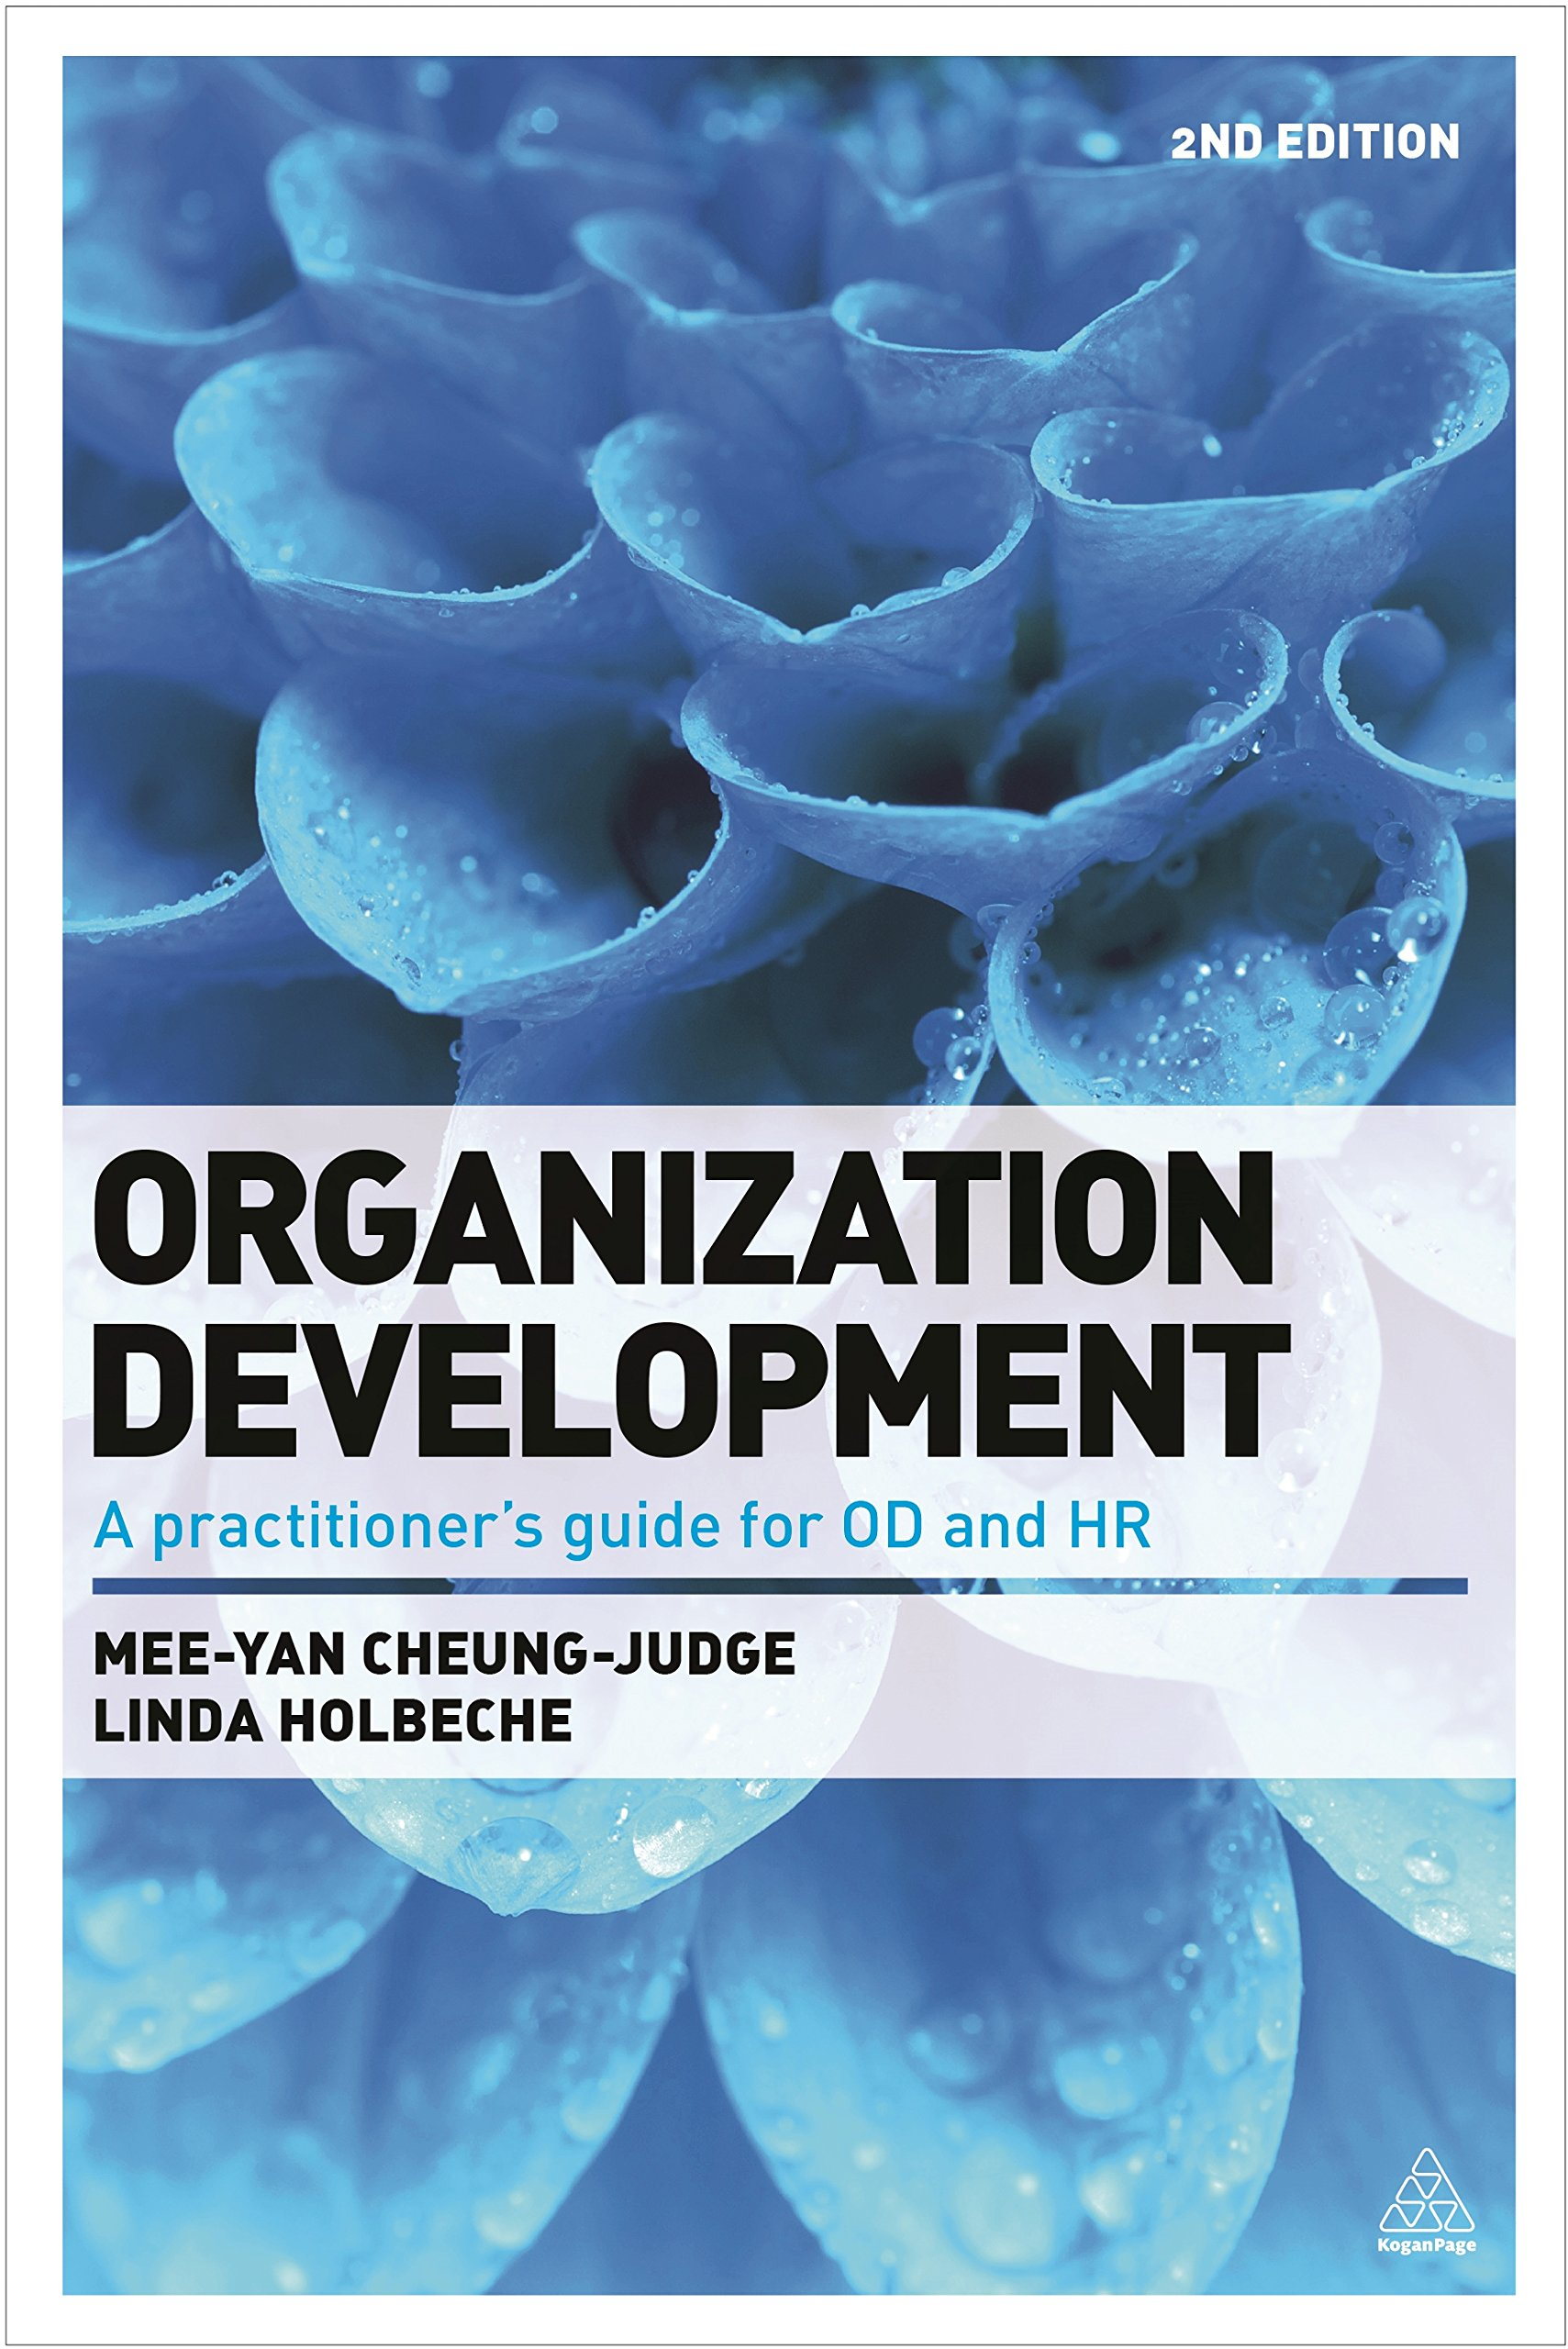 Organization Development A Practitioner s Guide for OD and HR